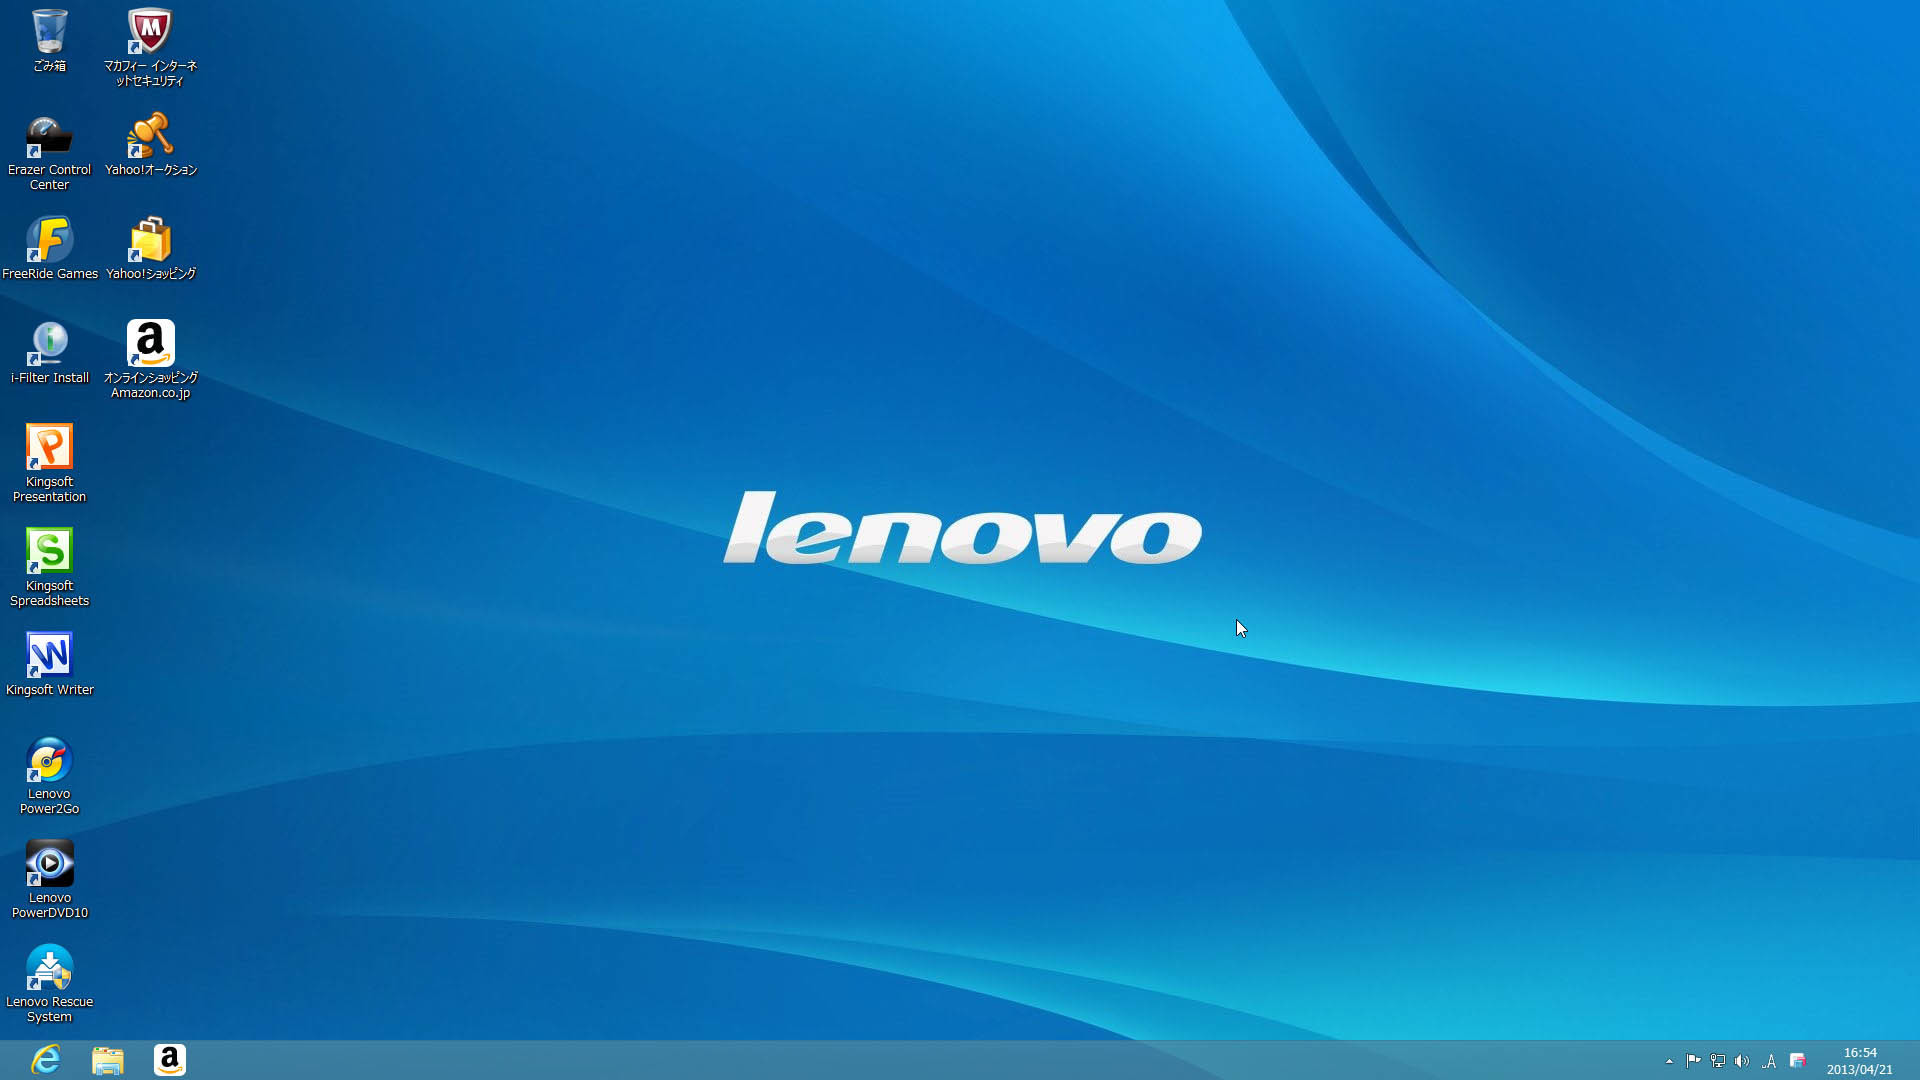 1920x1080 gorgerous-lenovo-thinkpad-wallpaper-1920×1080-for-iphone-5s-WTG3063435